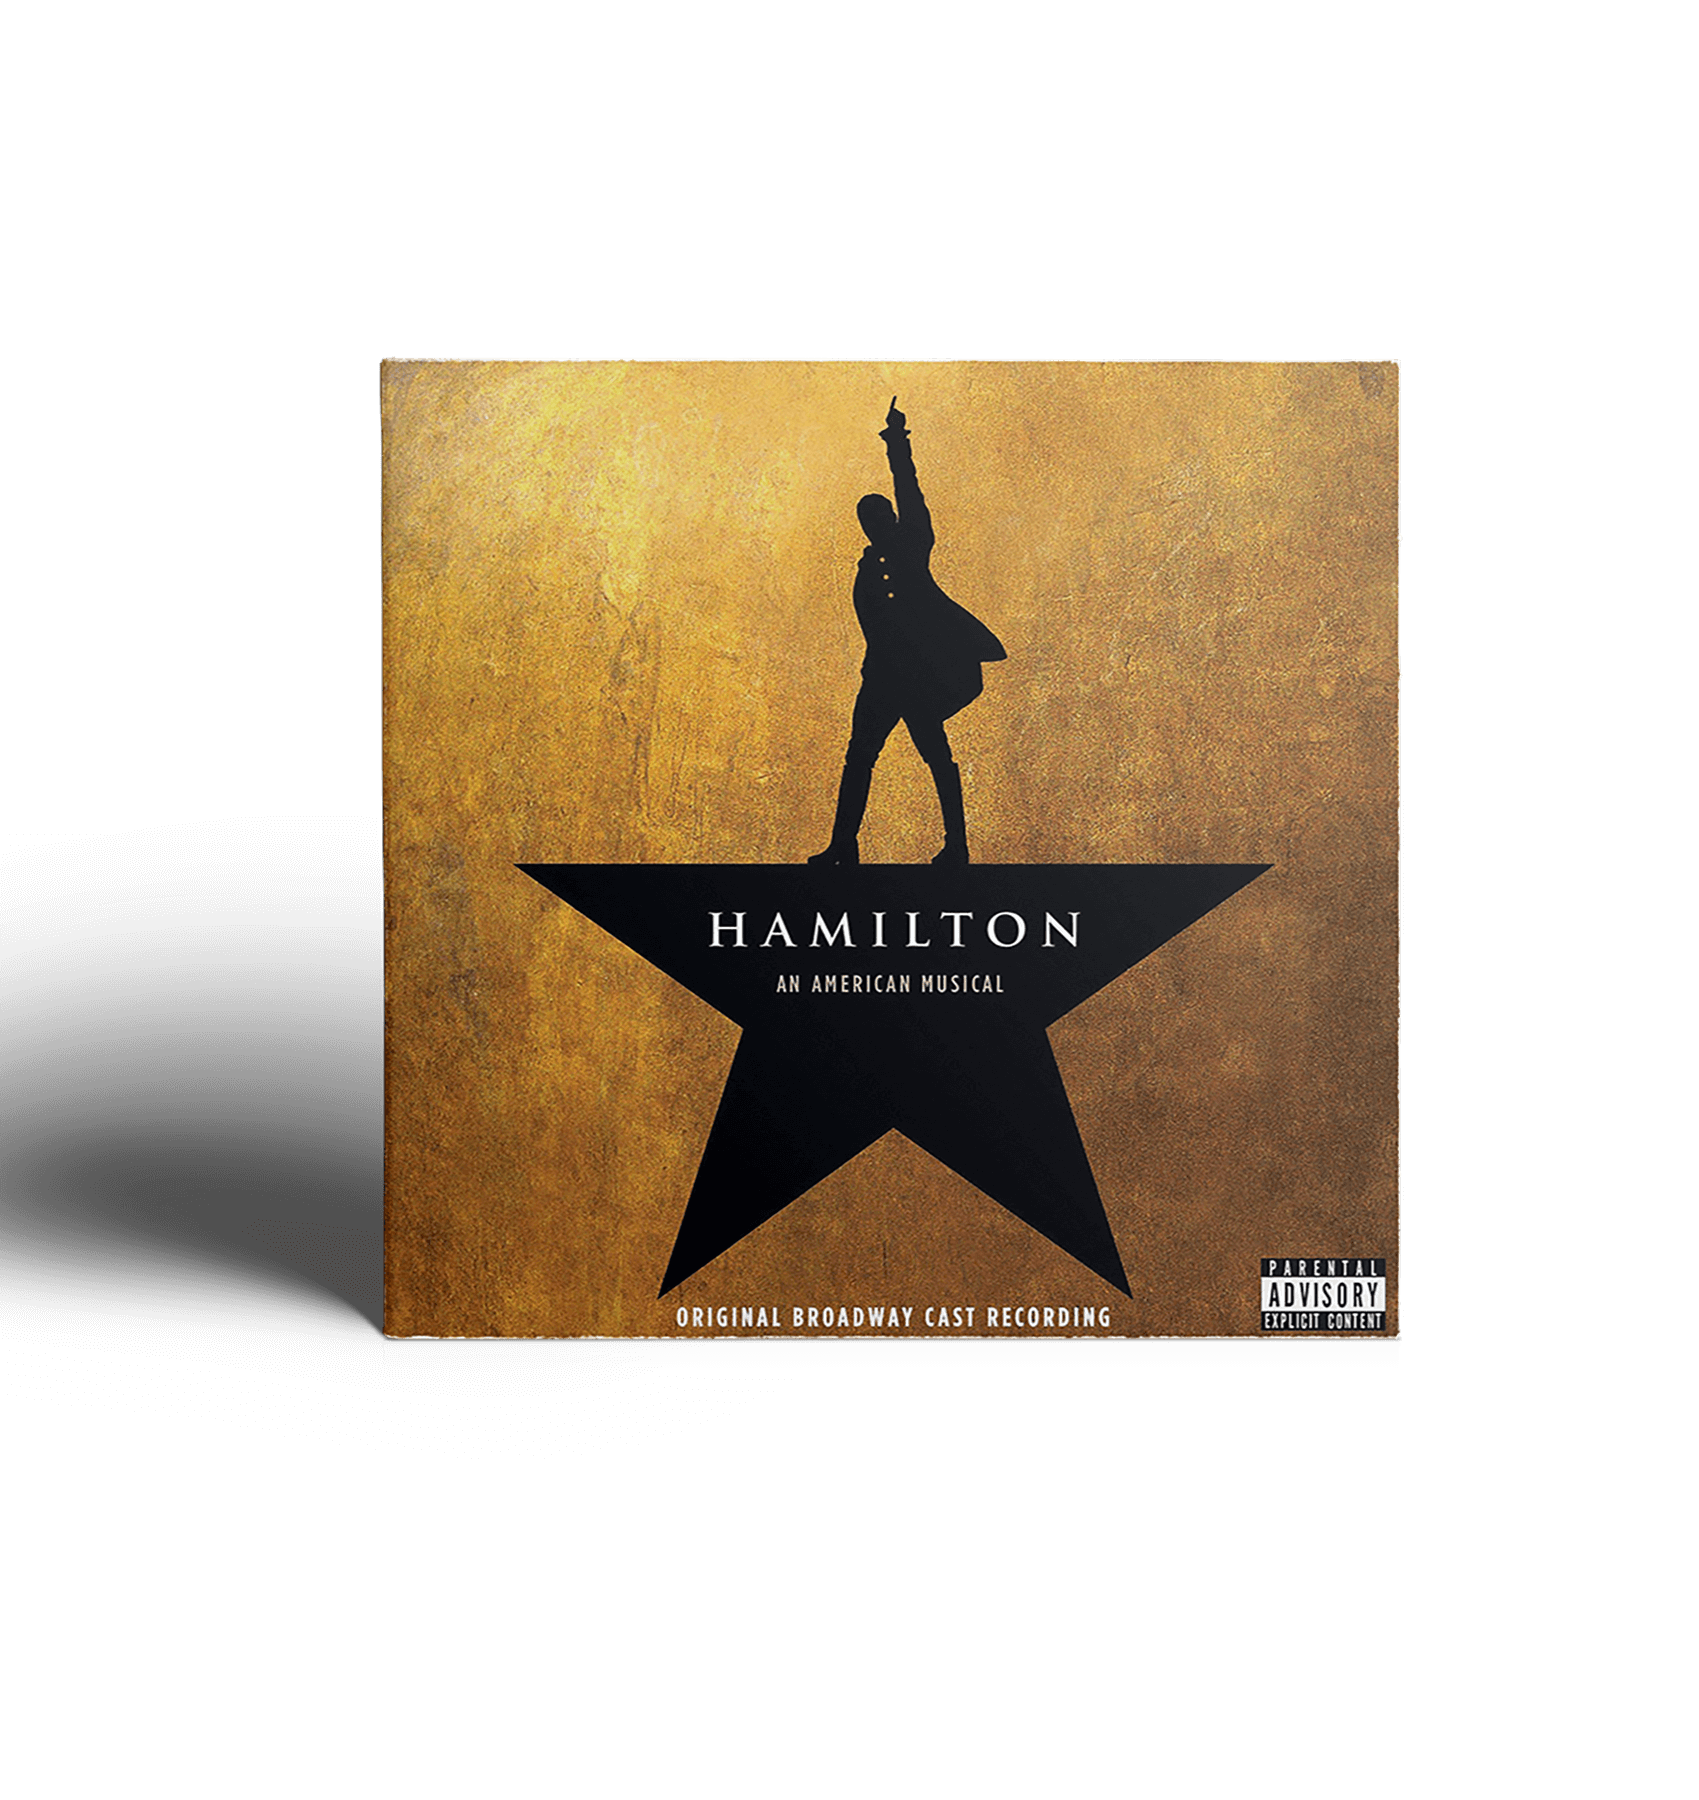 Cover art for Hamilton